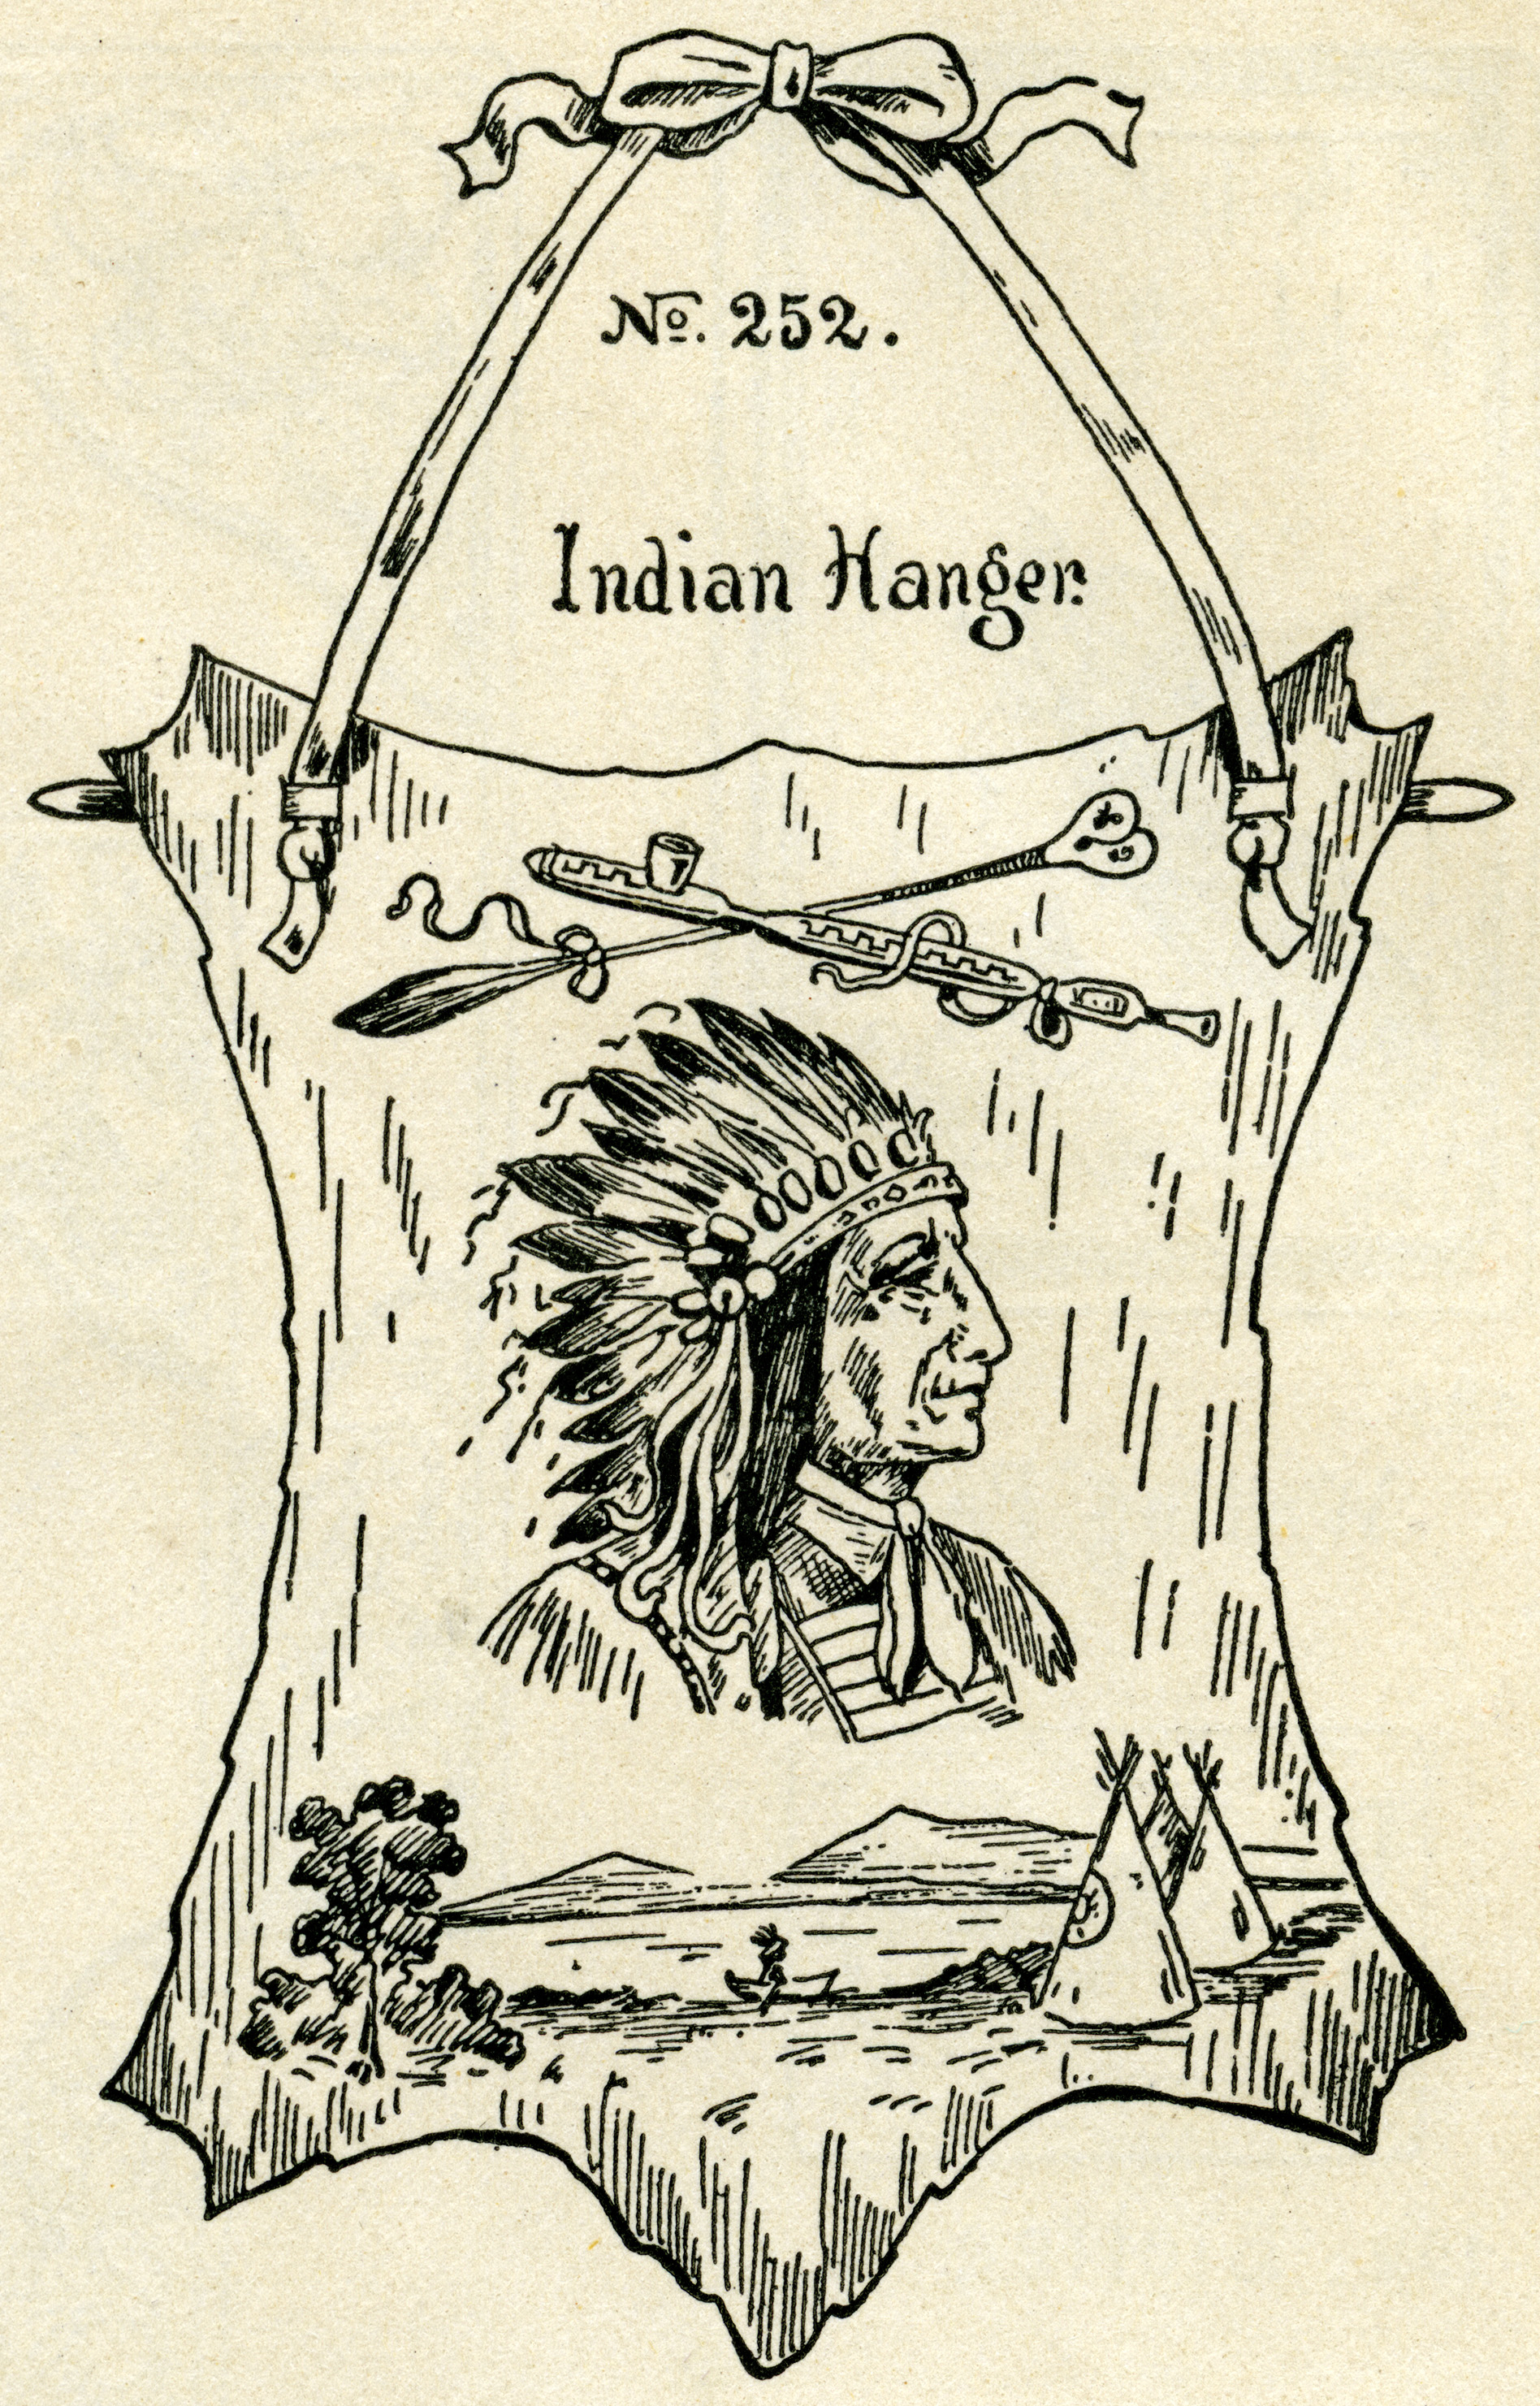 Vintage hanger clipart picture royalty free library Indian Chief ~ Free Vintage Clip Art - Old Design Shop Blog picture royalty free library